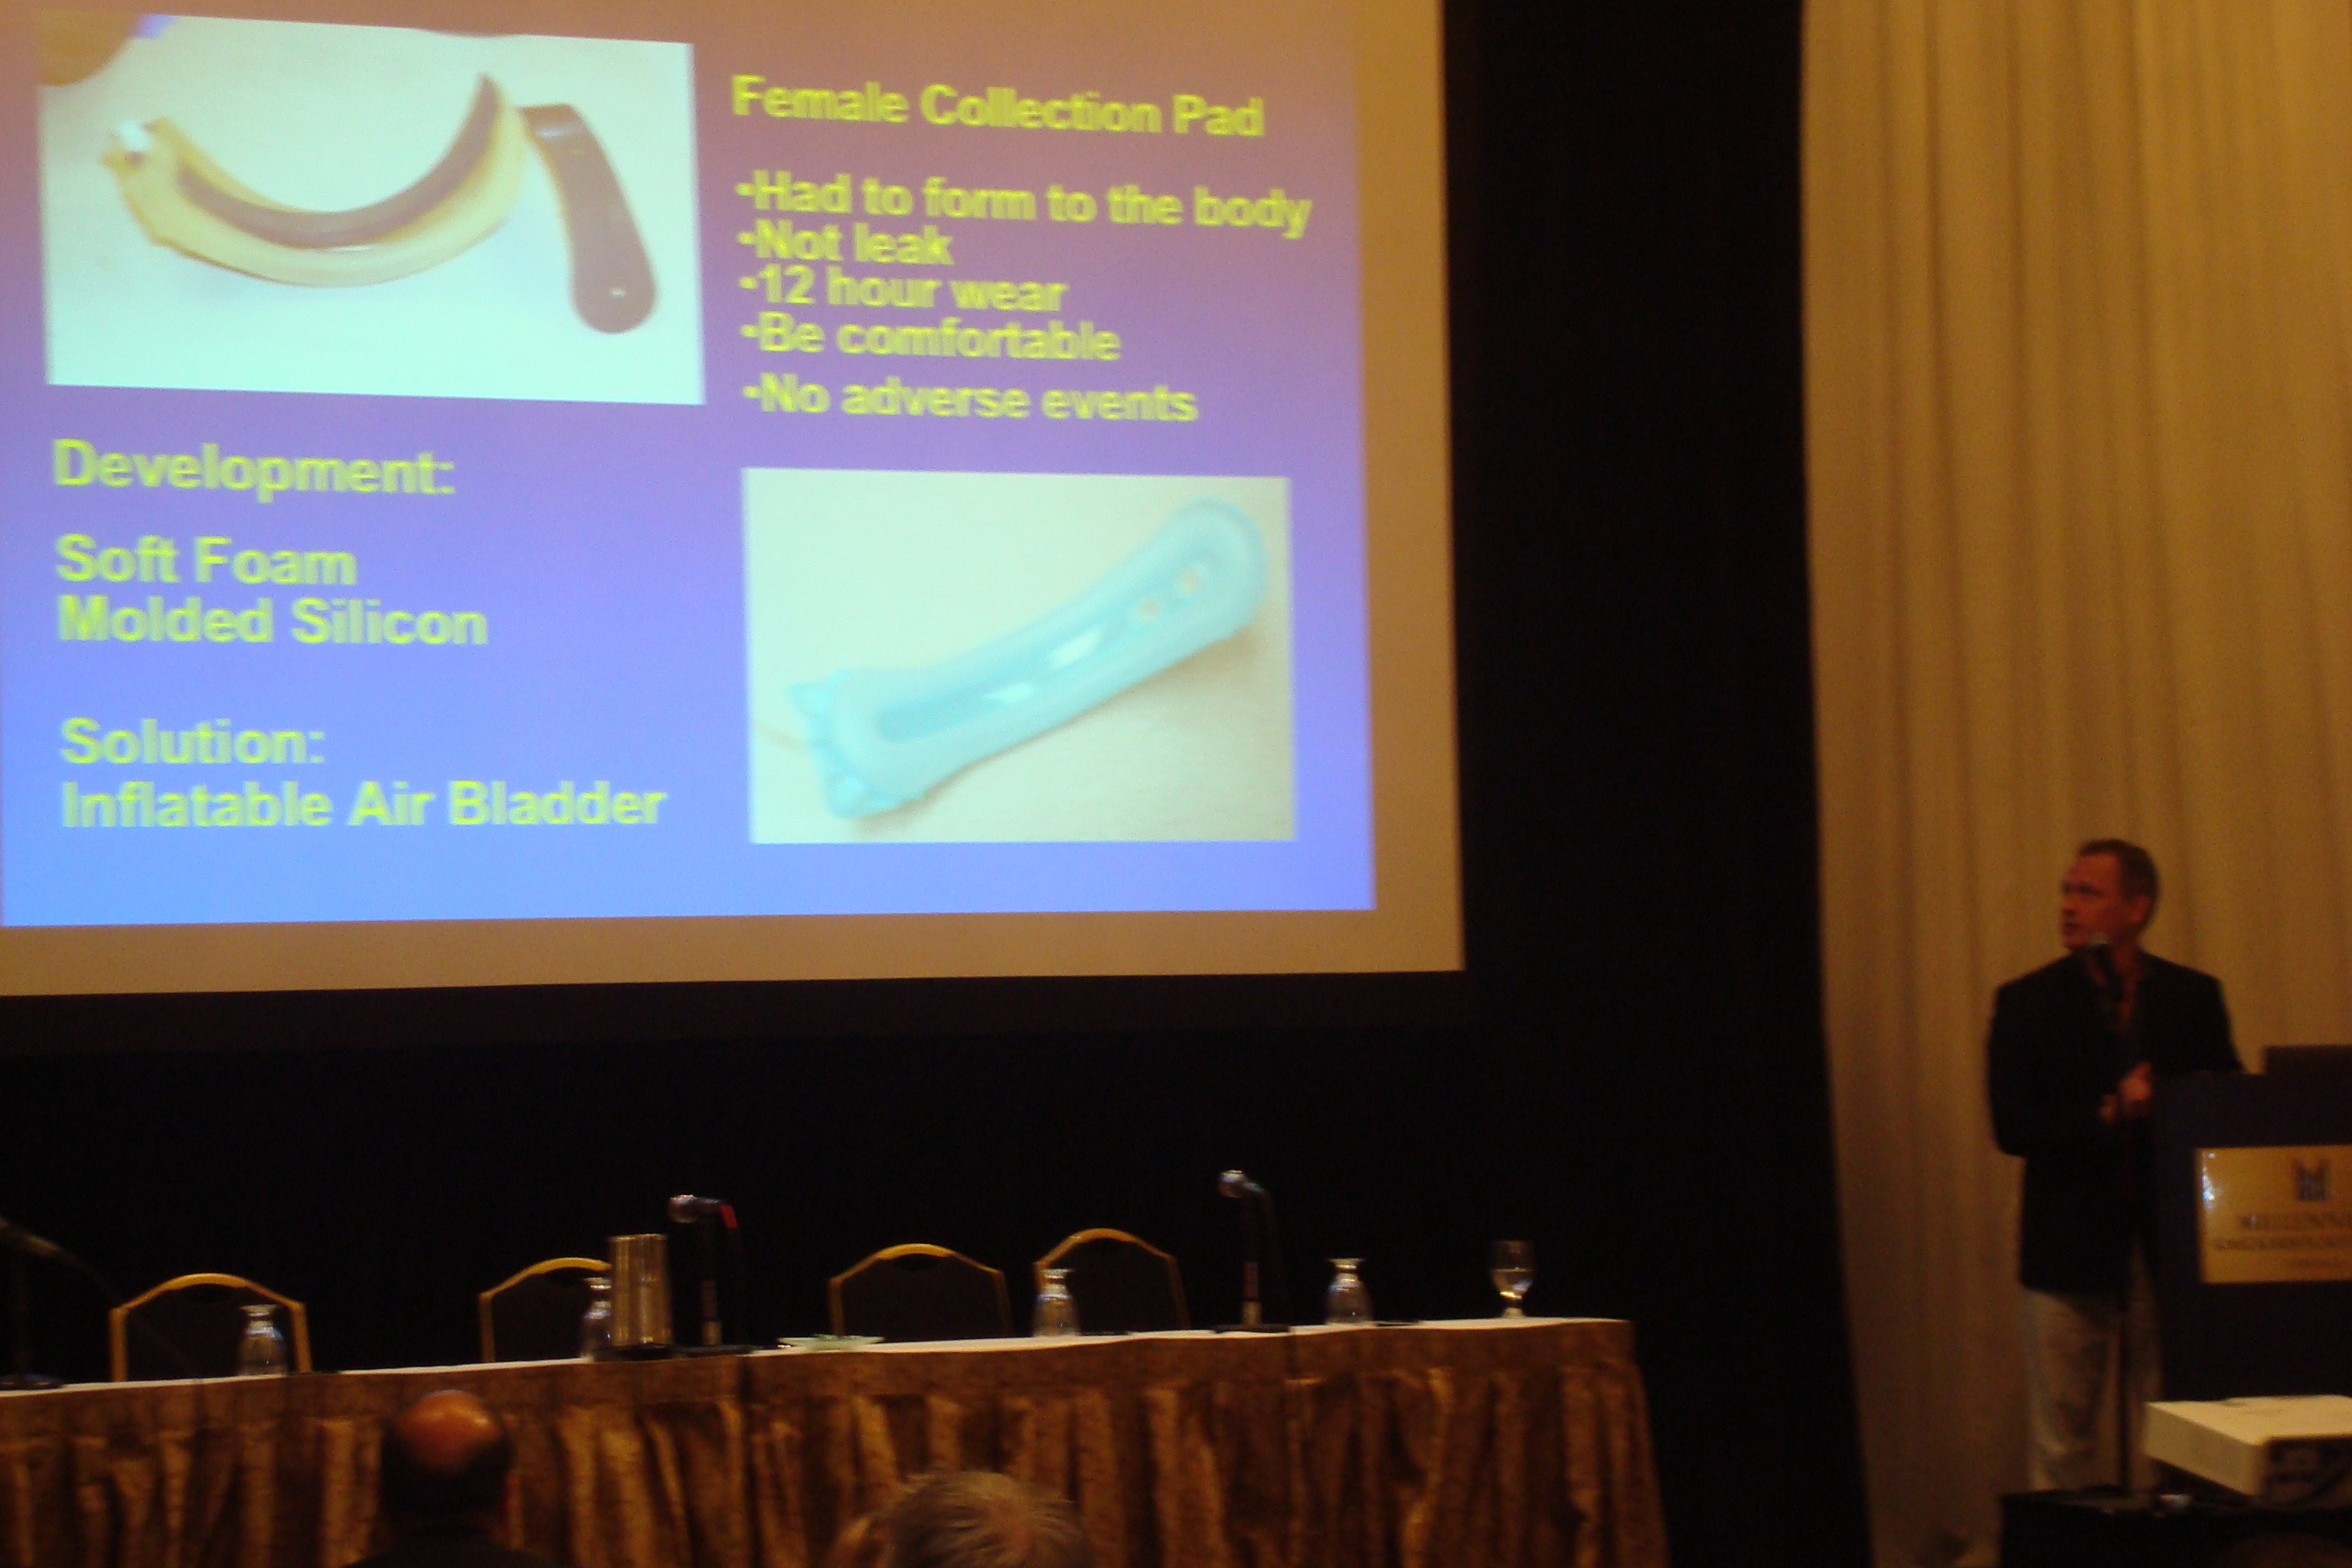 Innovating for Continence 2015